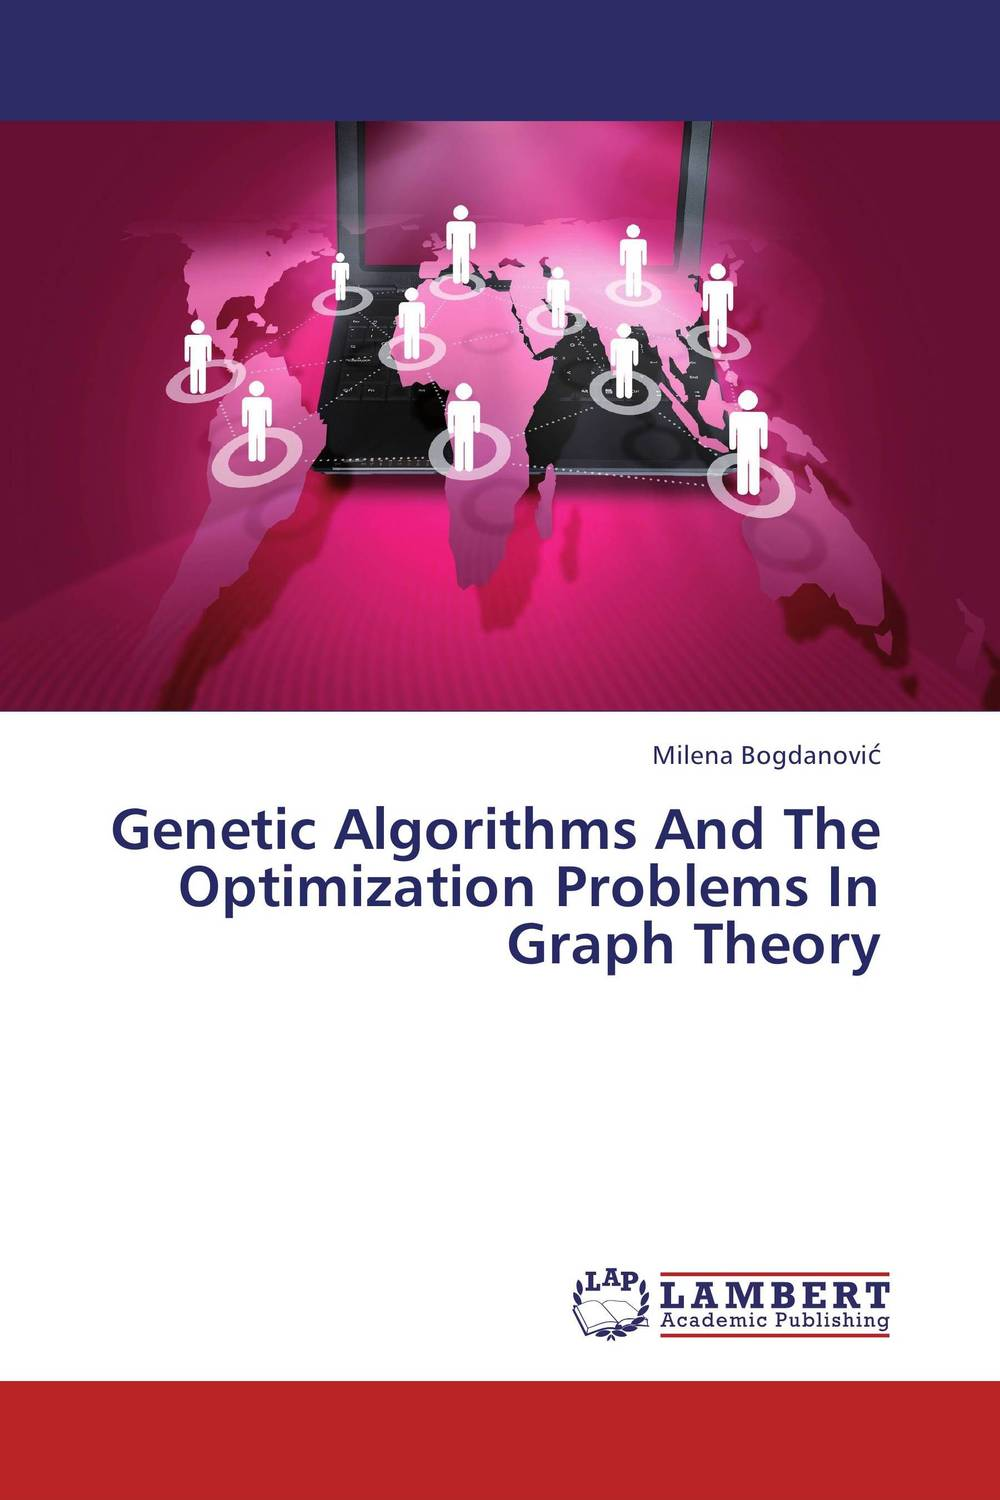 все цены на Genetic Algorithms And The Optimization Problems In Graph Theory онлайн